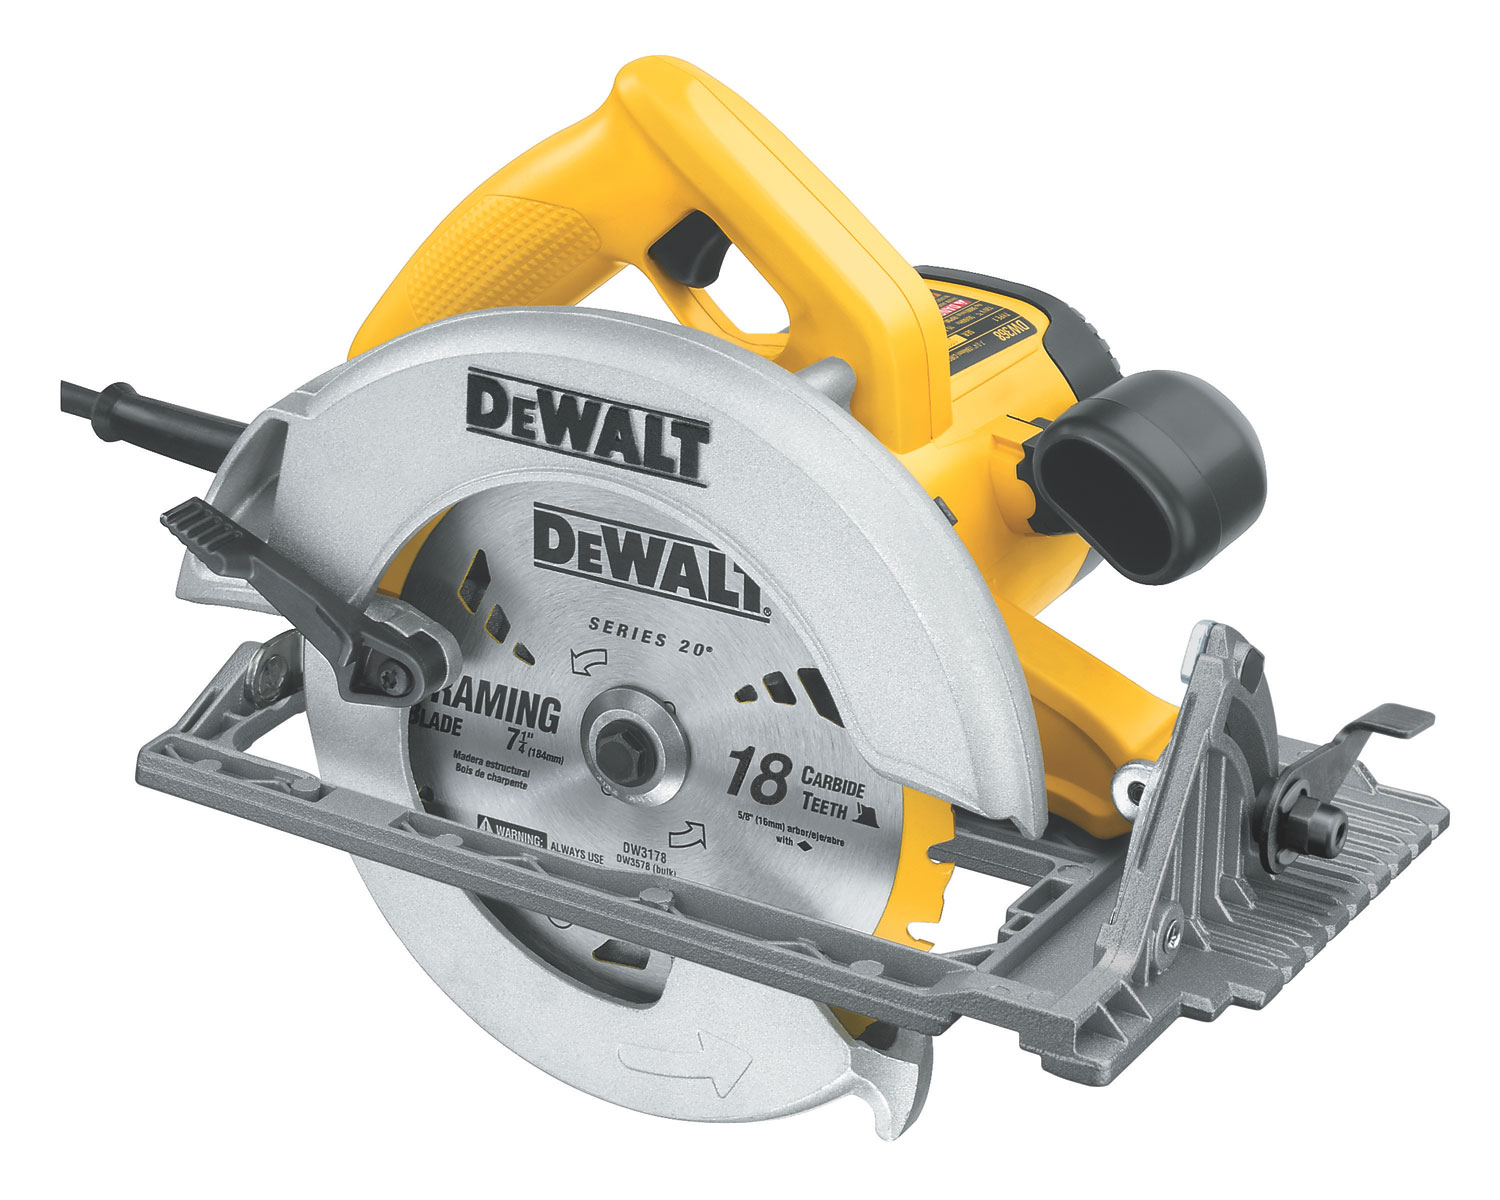 Amazon.com: DEWALT DW368K Heavy-Duty 7-1/4-Inch ...